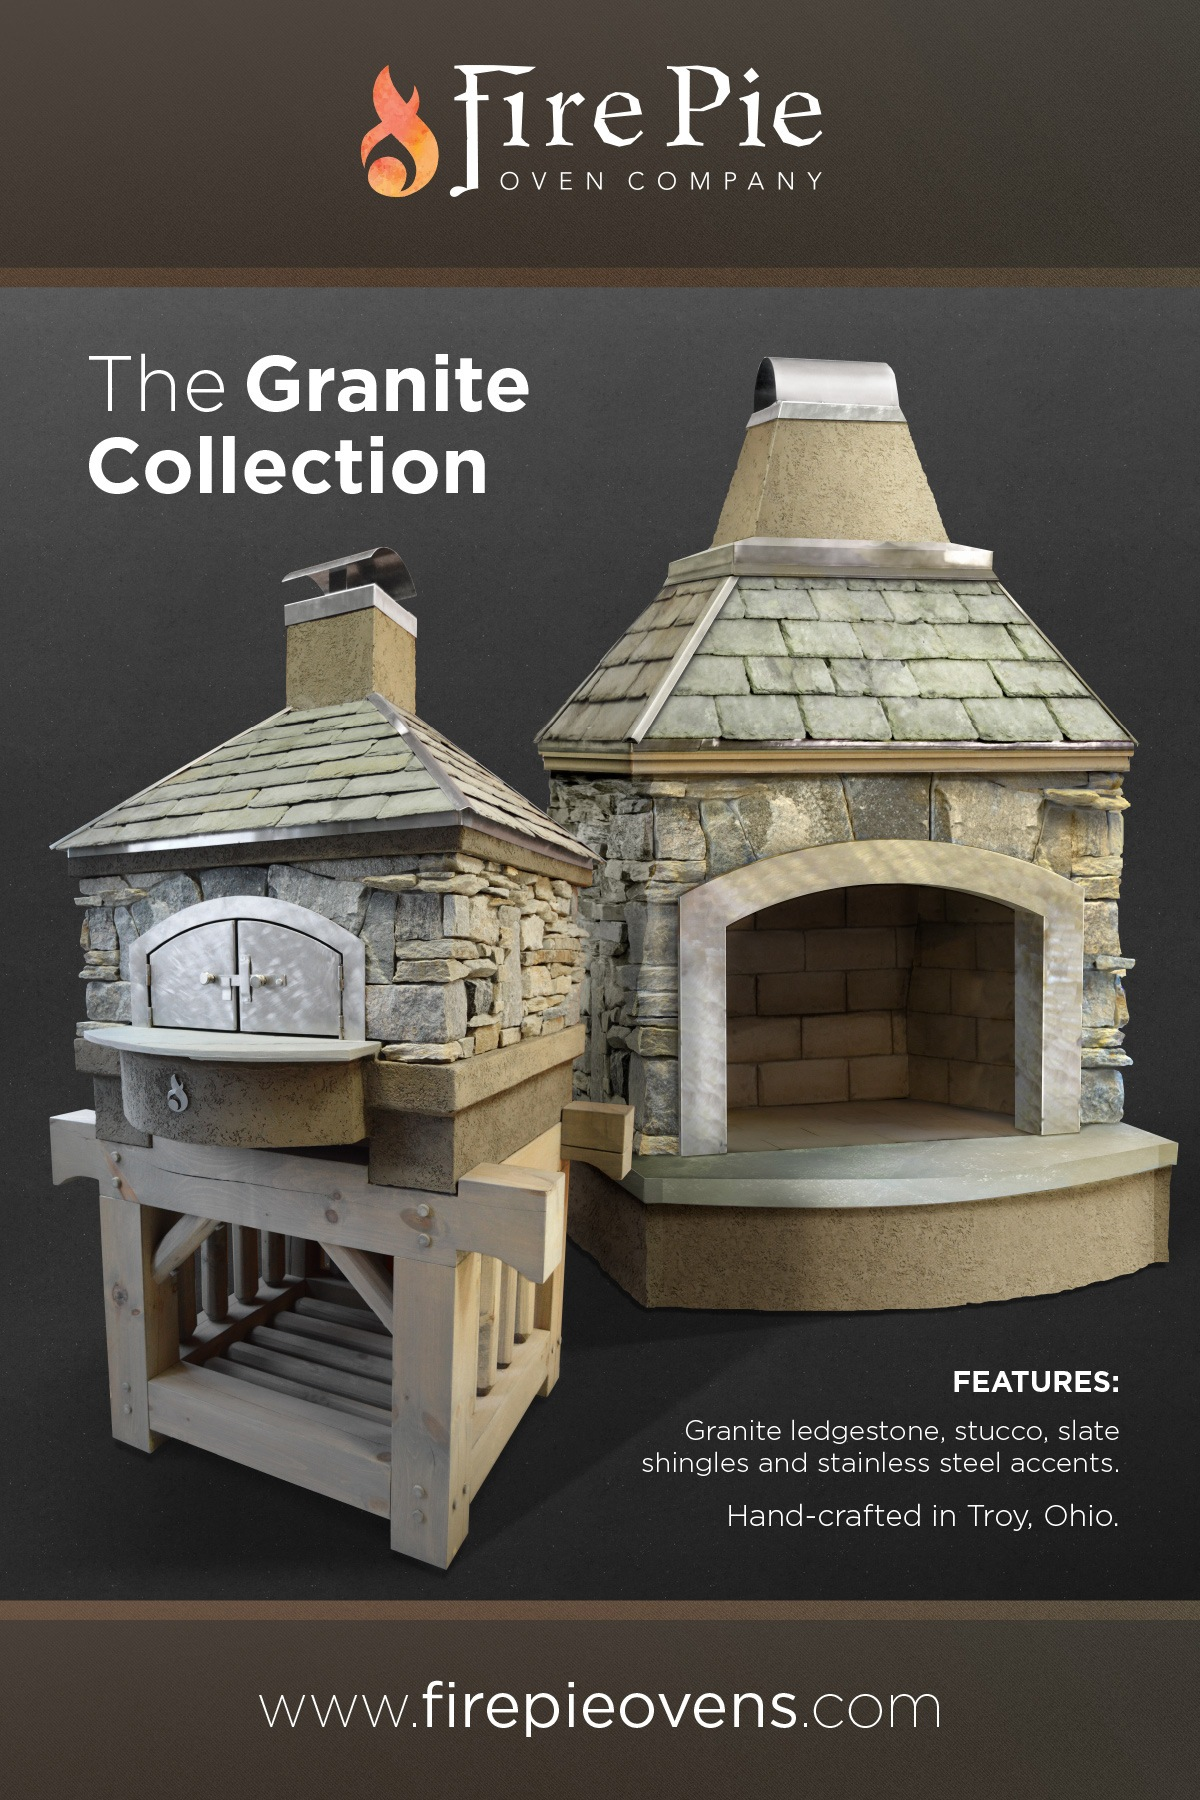 A large poster design for the granite collection